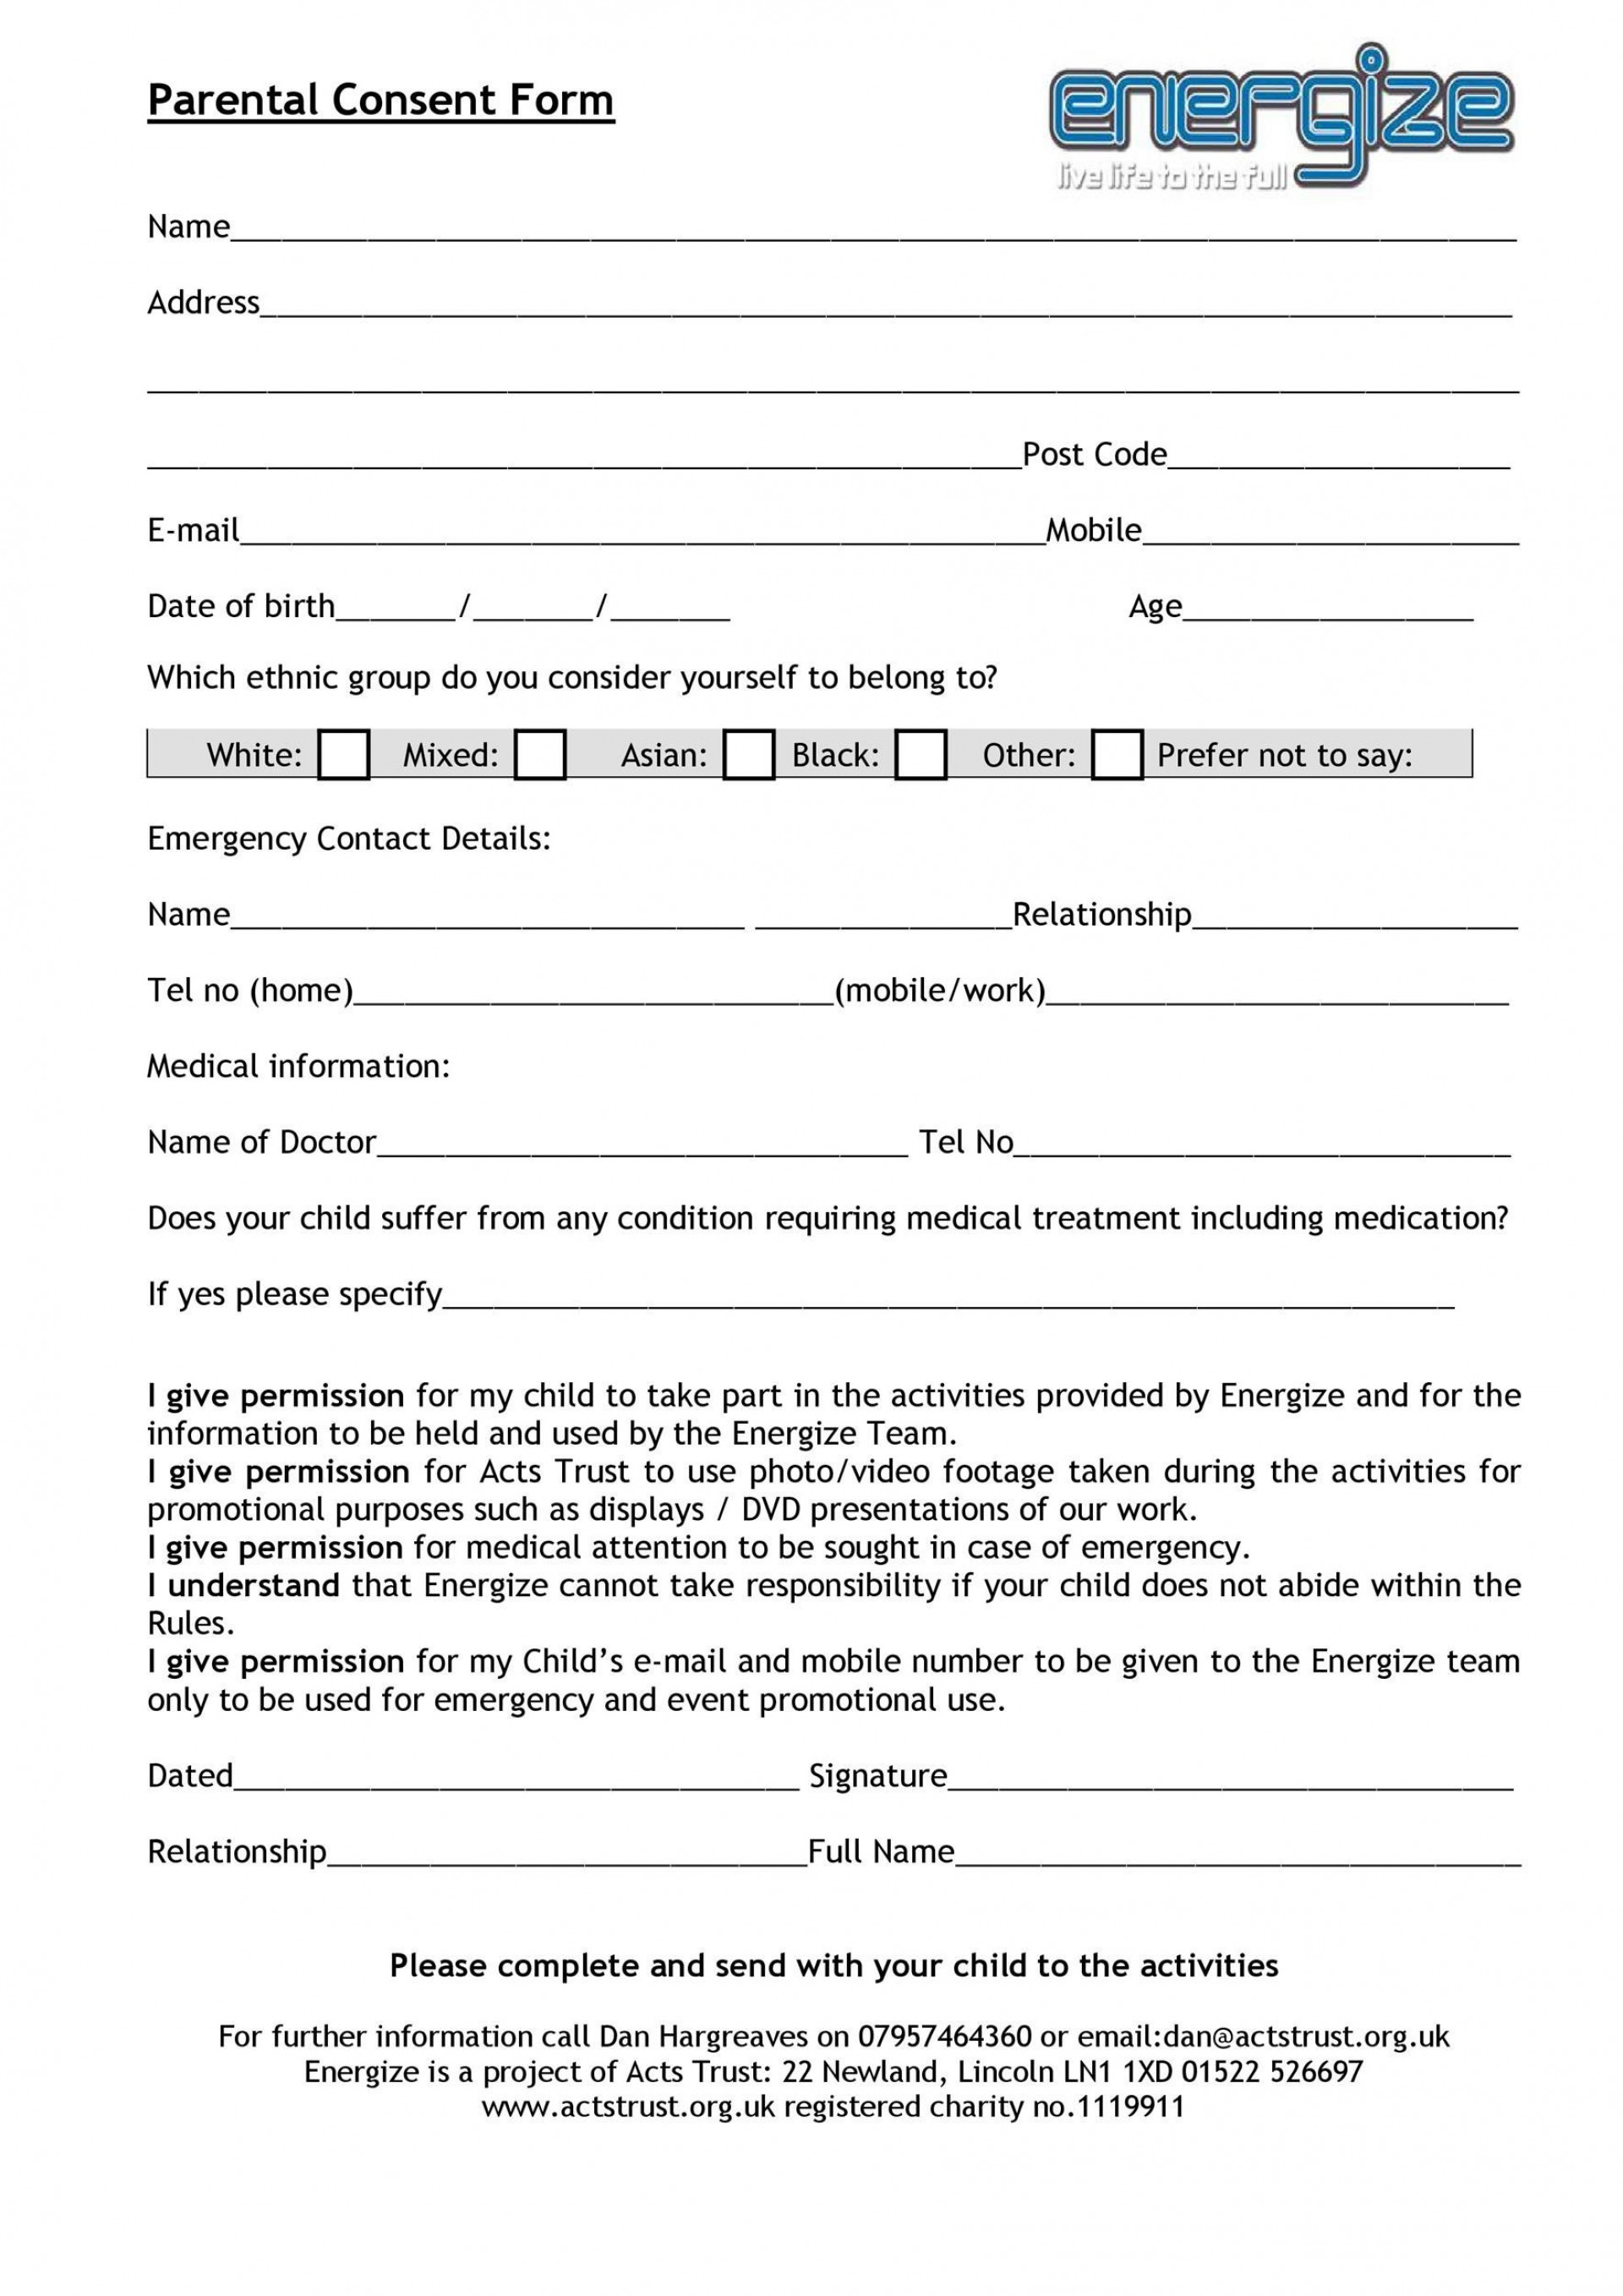 008 Phenomenal Medical Consent Form Template Example  Templates Informed Sample South Africa Treatment1920